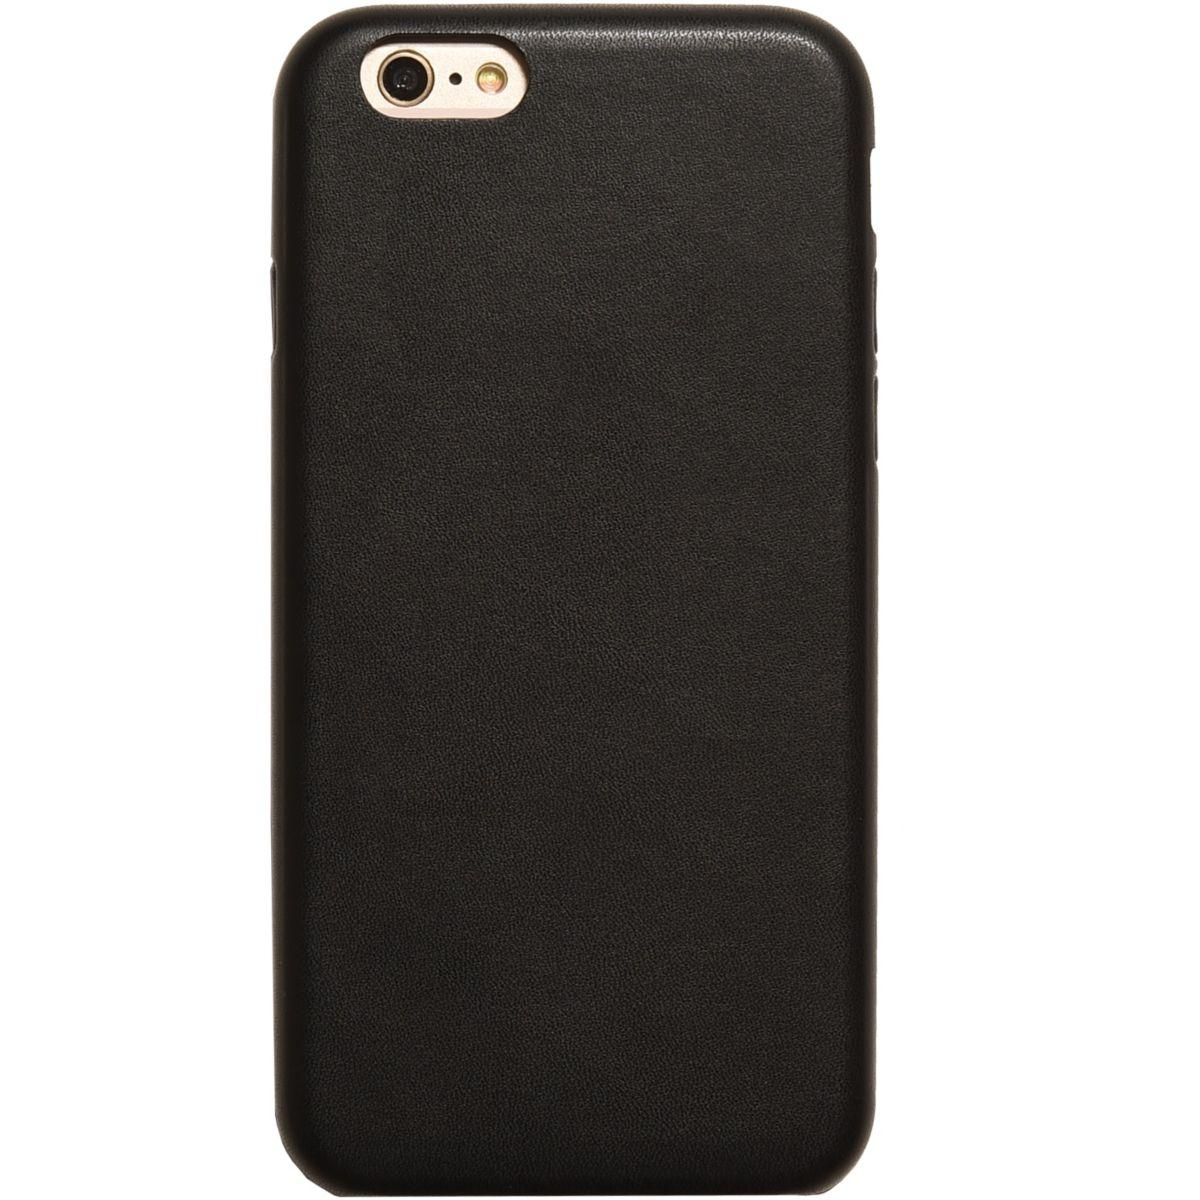 Coque adeqwat iphone 6 noir (photo)